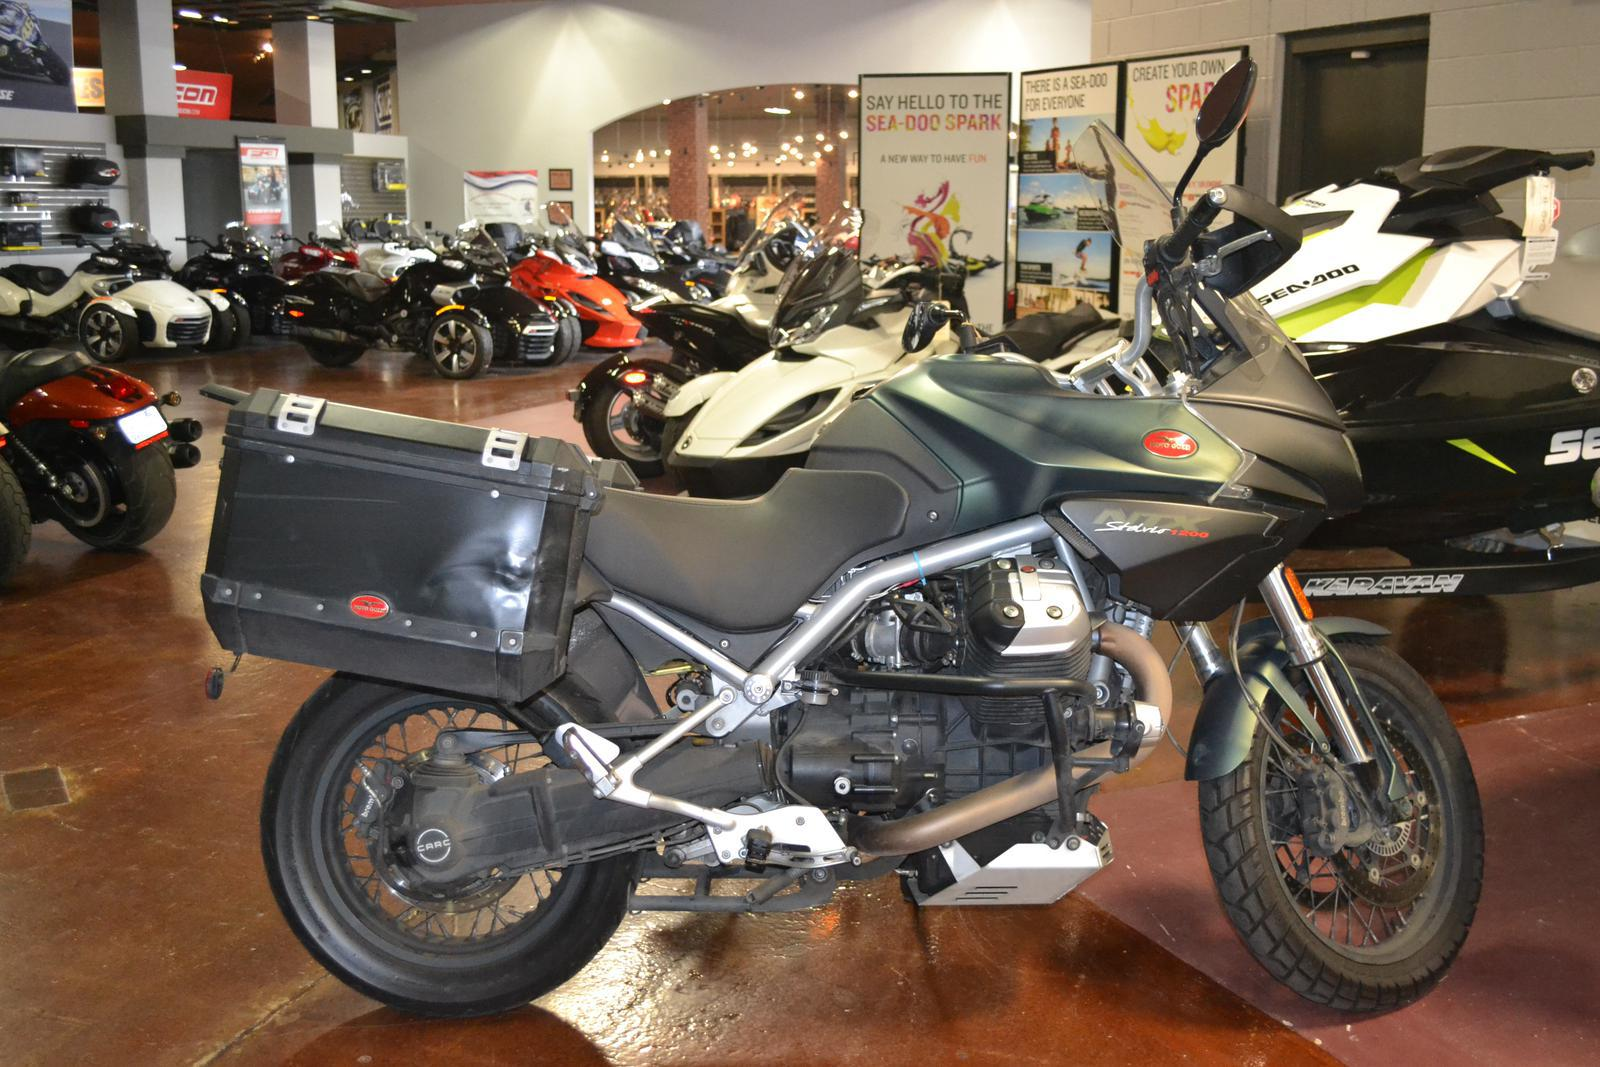 used inventory bmw motorcycles of vancouver vancouver, wa (360